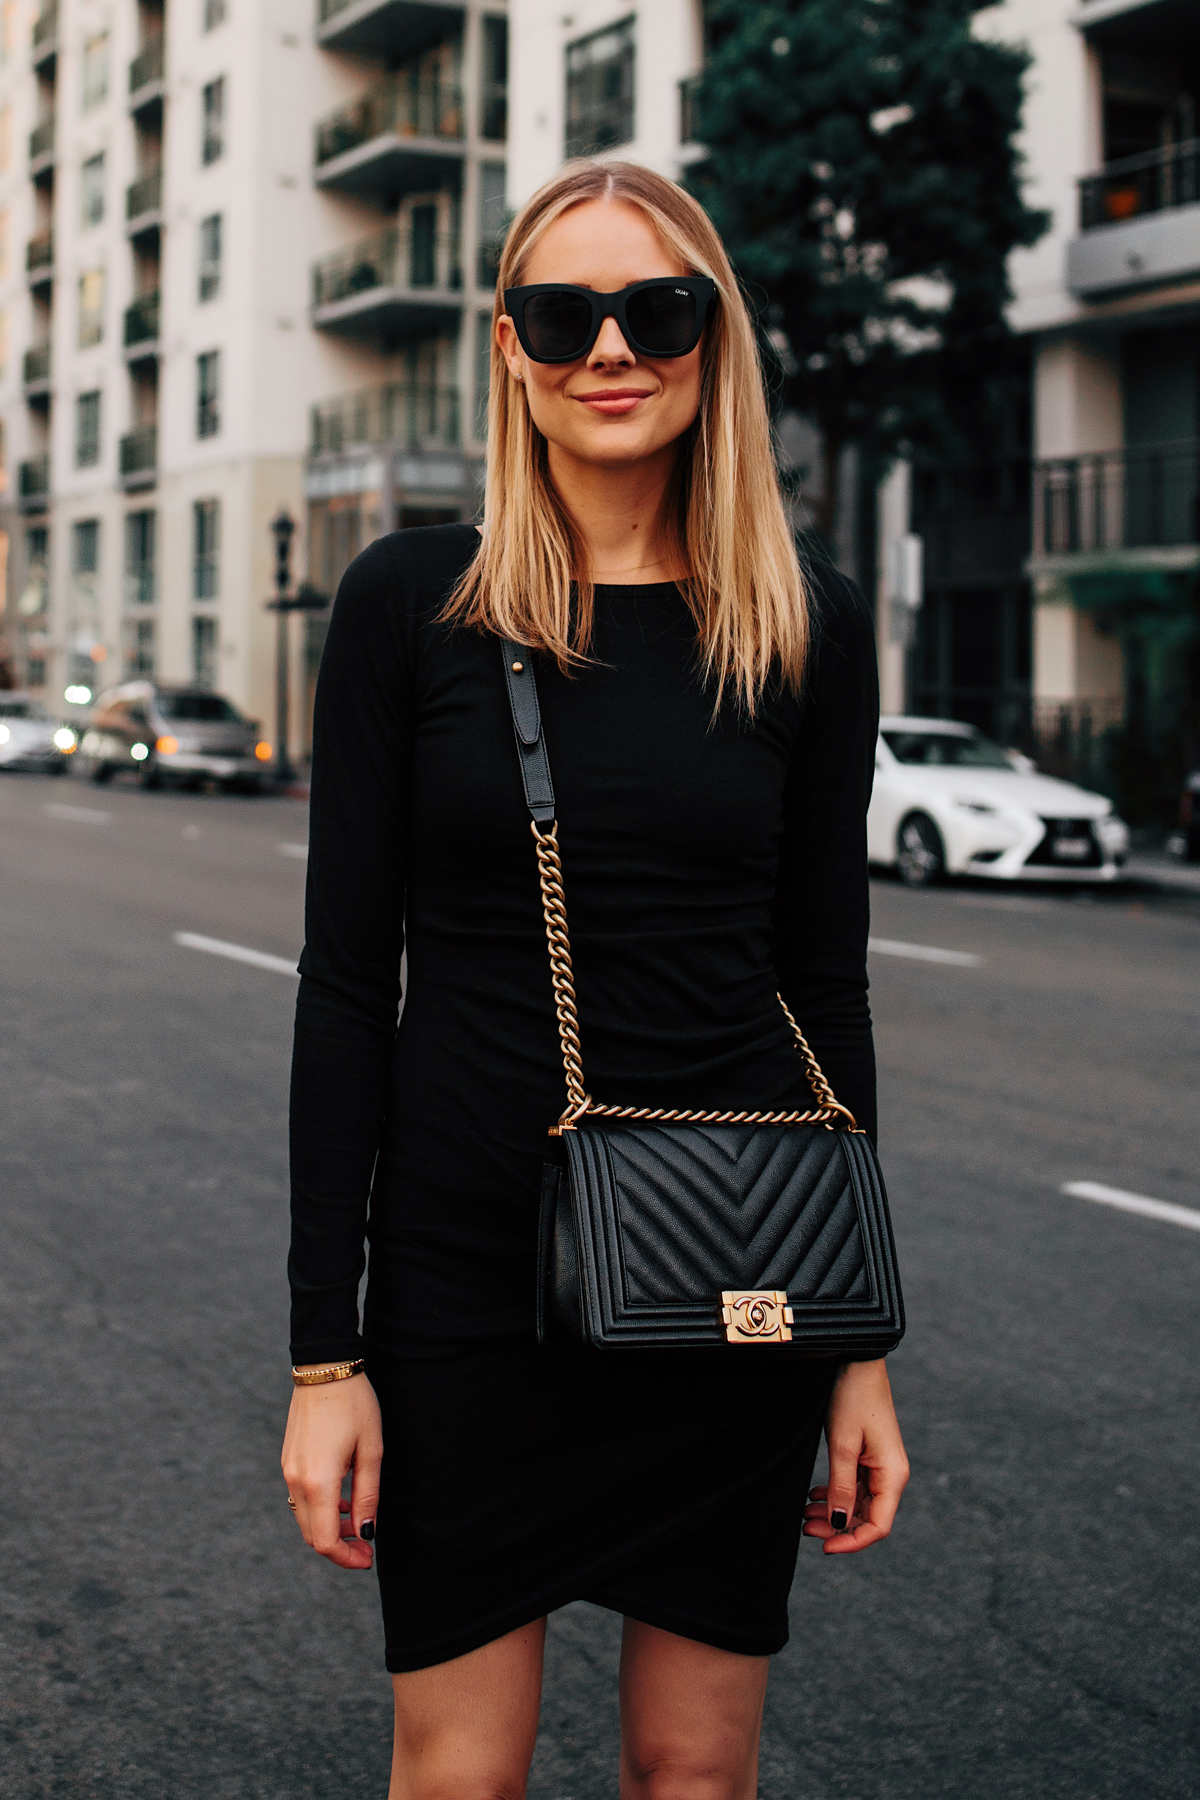 Blonde Woman Wearing Long Sleeve Black Bodycon Dress Chanel Black Boy Bag Fashion Jackson San Diego Fashion Blogger Street Style